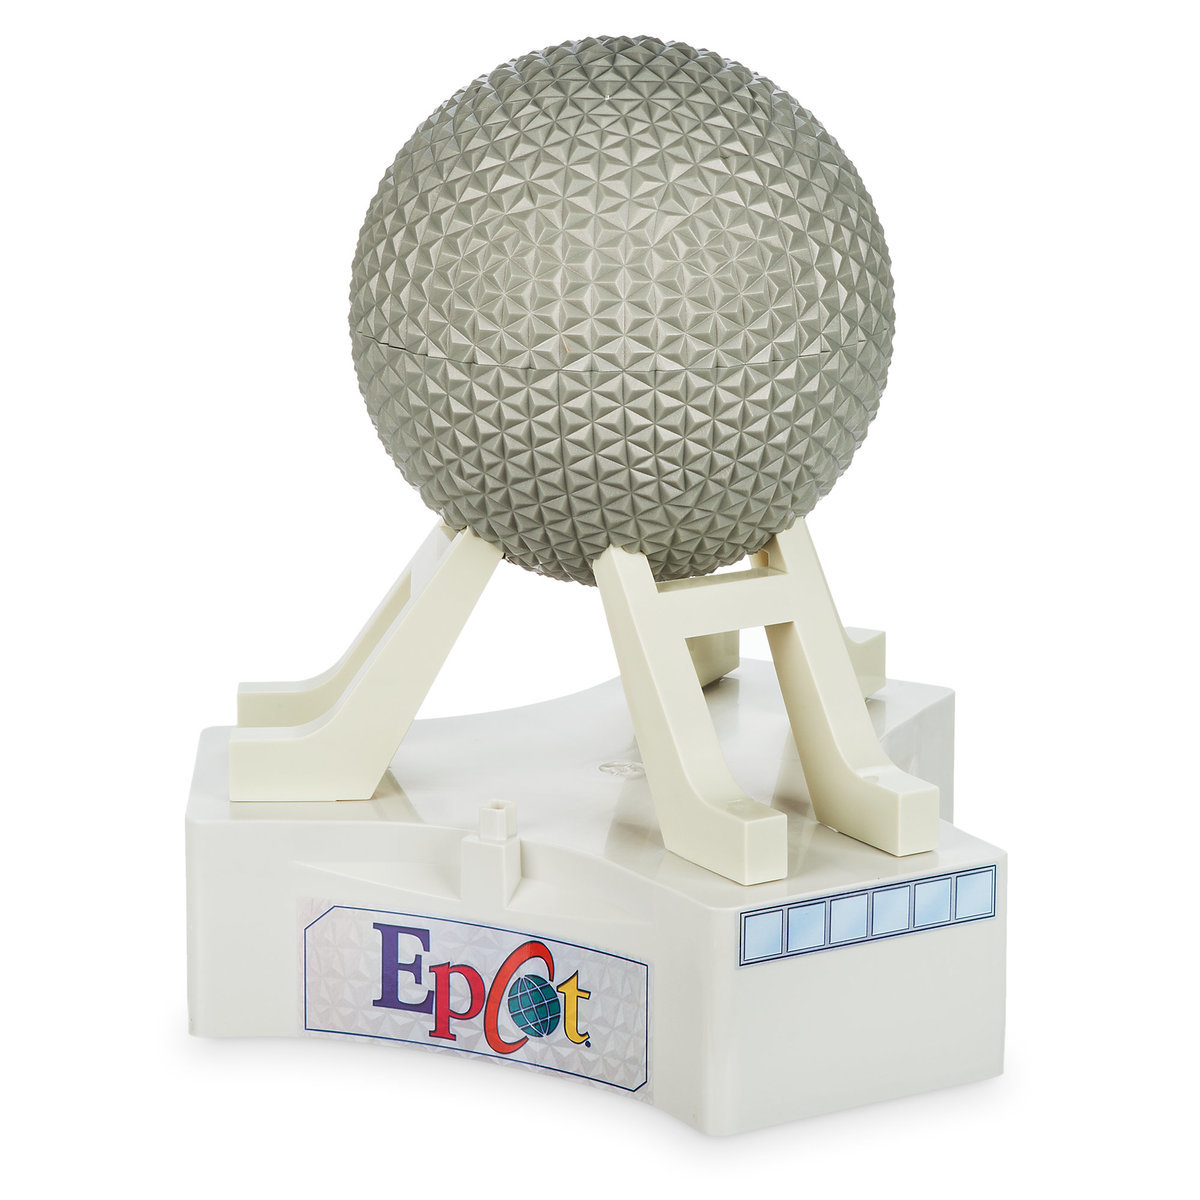 28c2372b2cead5 Product Image of Spaceship Earth Monorail Play Set Accessory - Epcot # 1